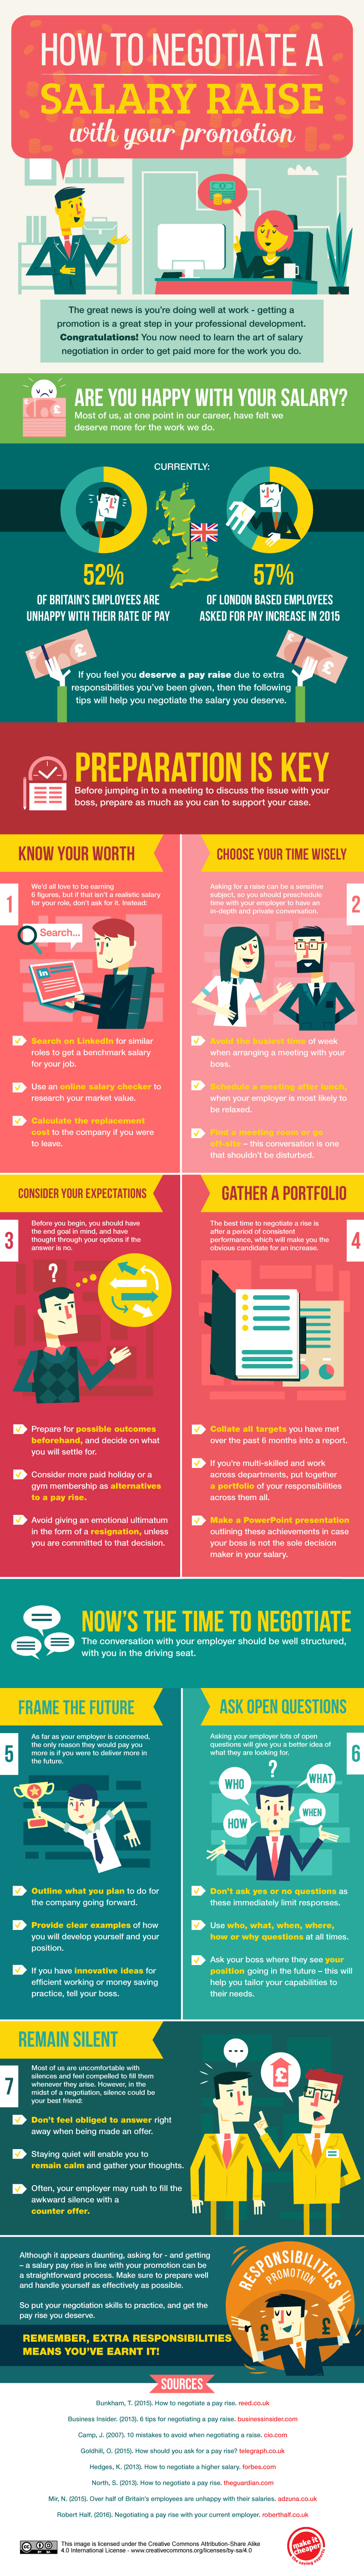 How To Negotiate A Salary Rise With Your Promotion [Infographic]